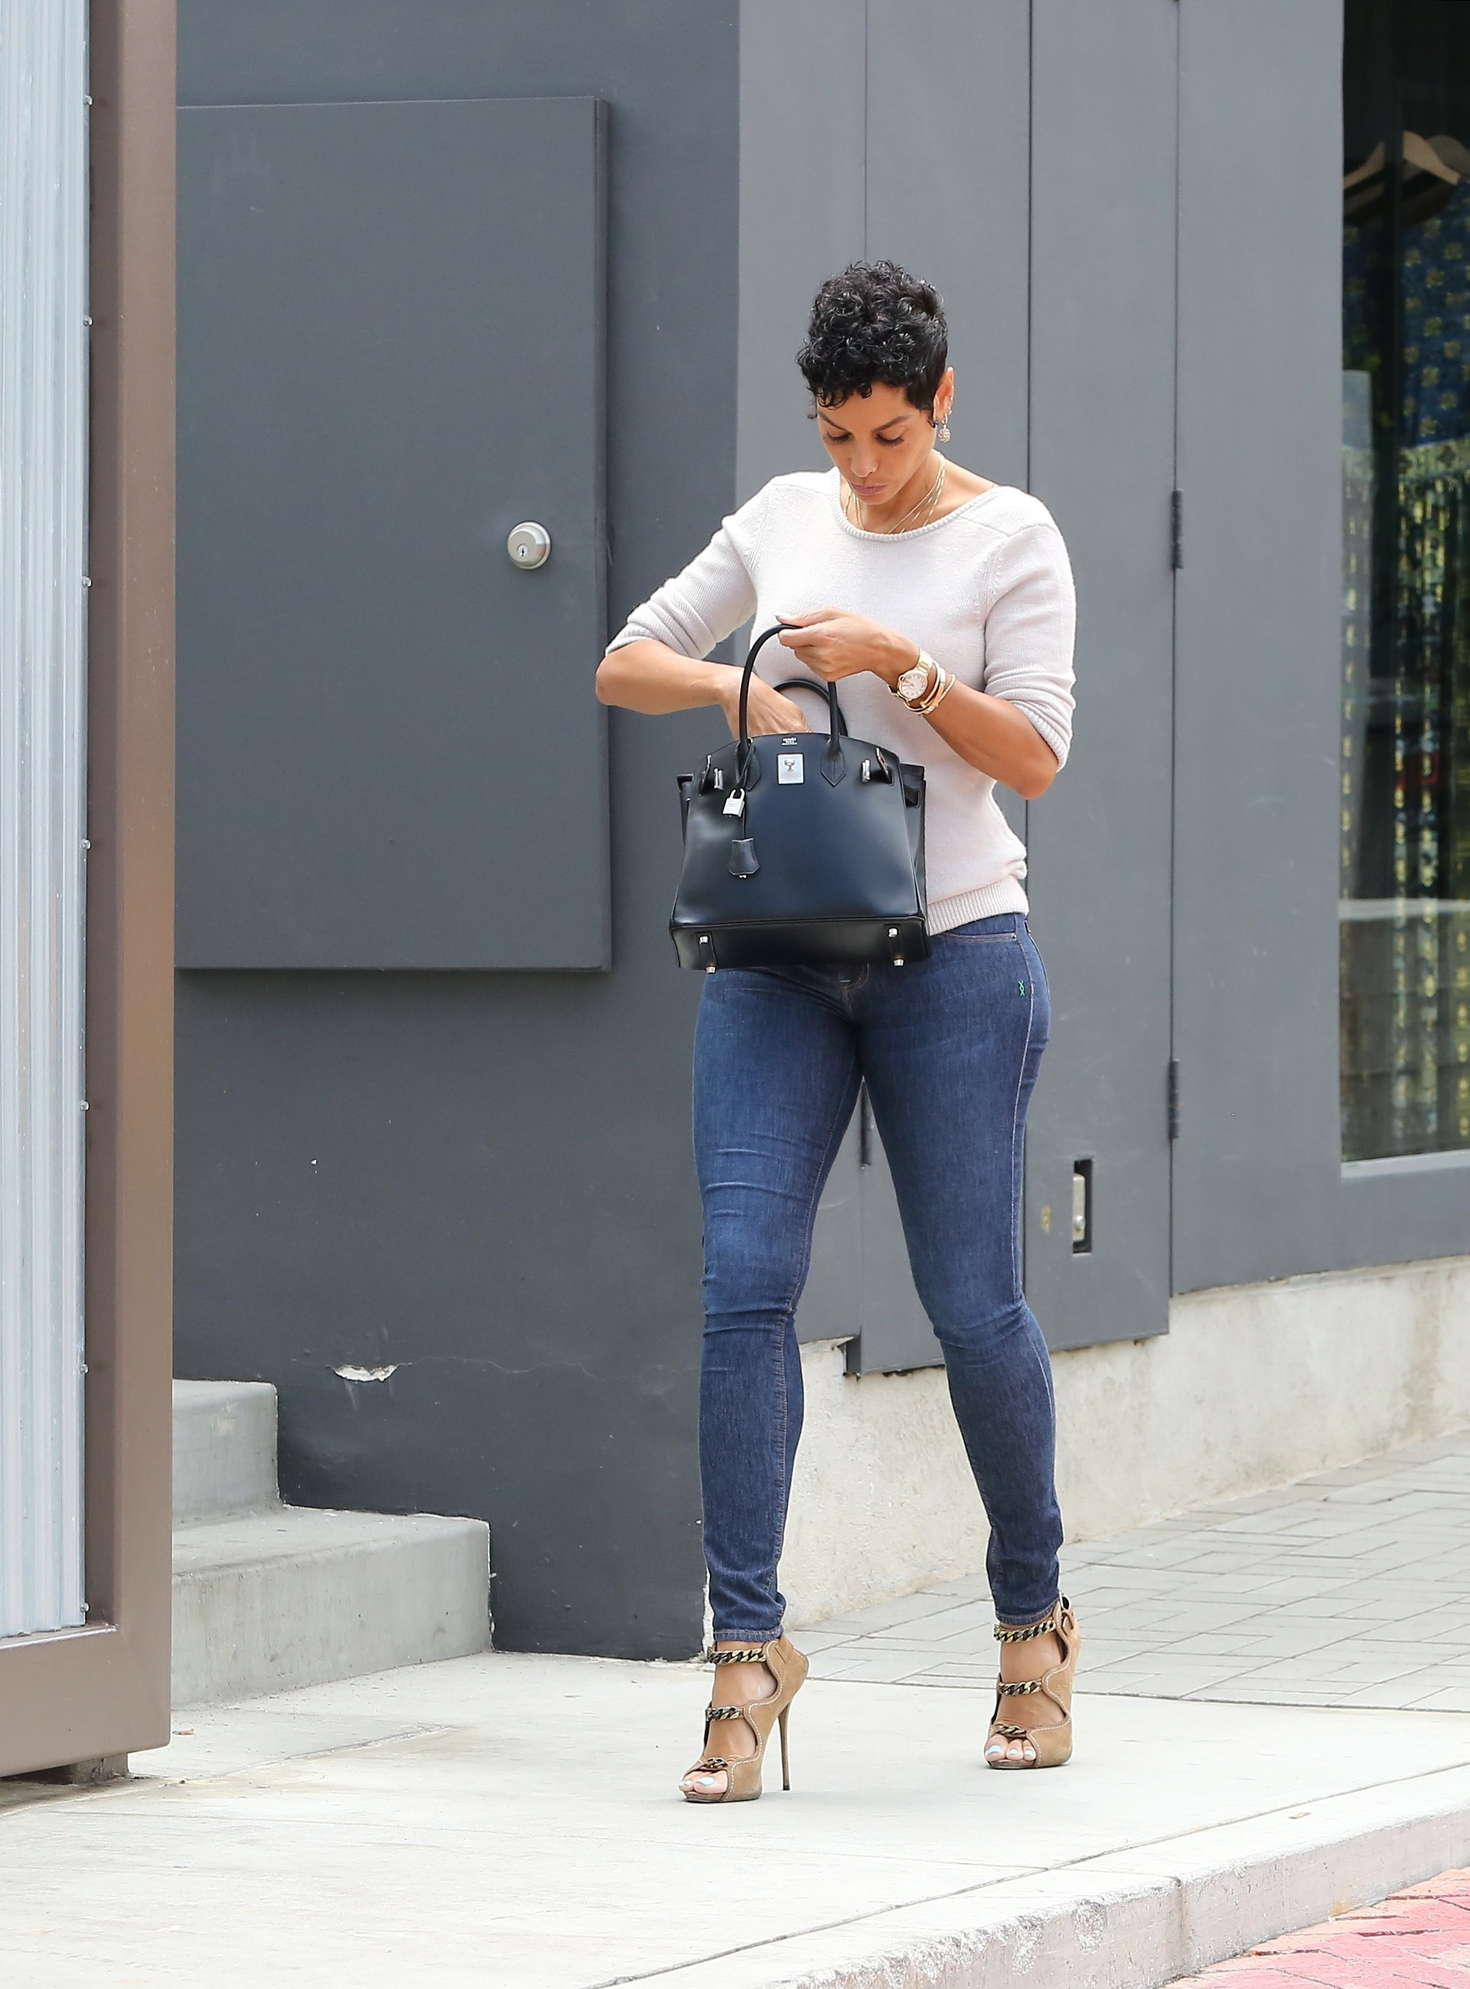 Cars 2 Live Wallpaper Nicole Murphy In Tight Jeans Shopping 03 Gotceleb